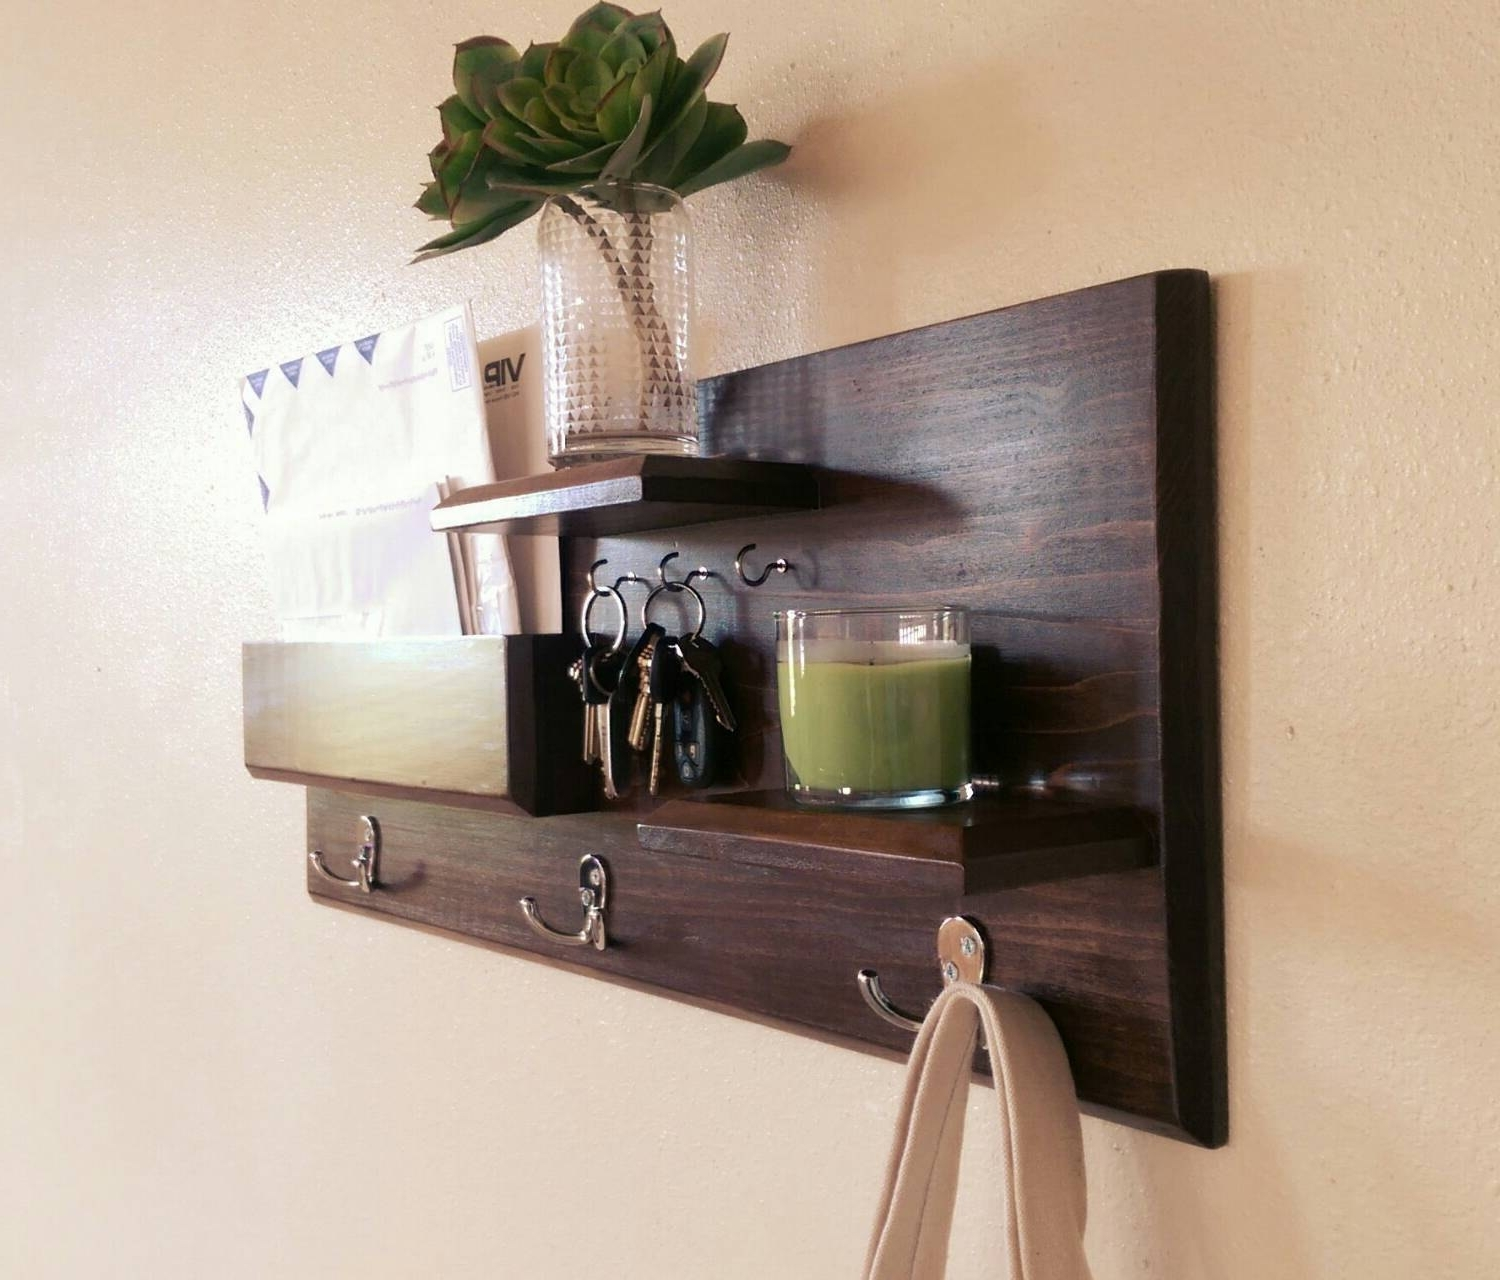 21 Amazing Shelf Rack Ideas For Your Home: Coat Racks For Your Entryway